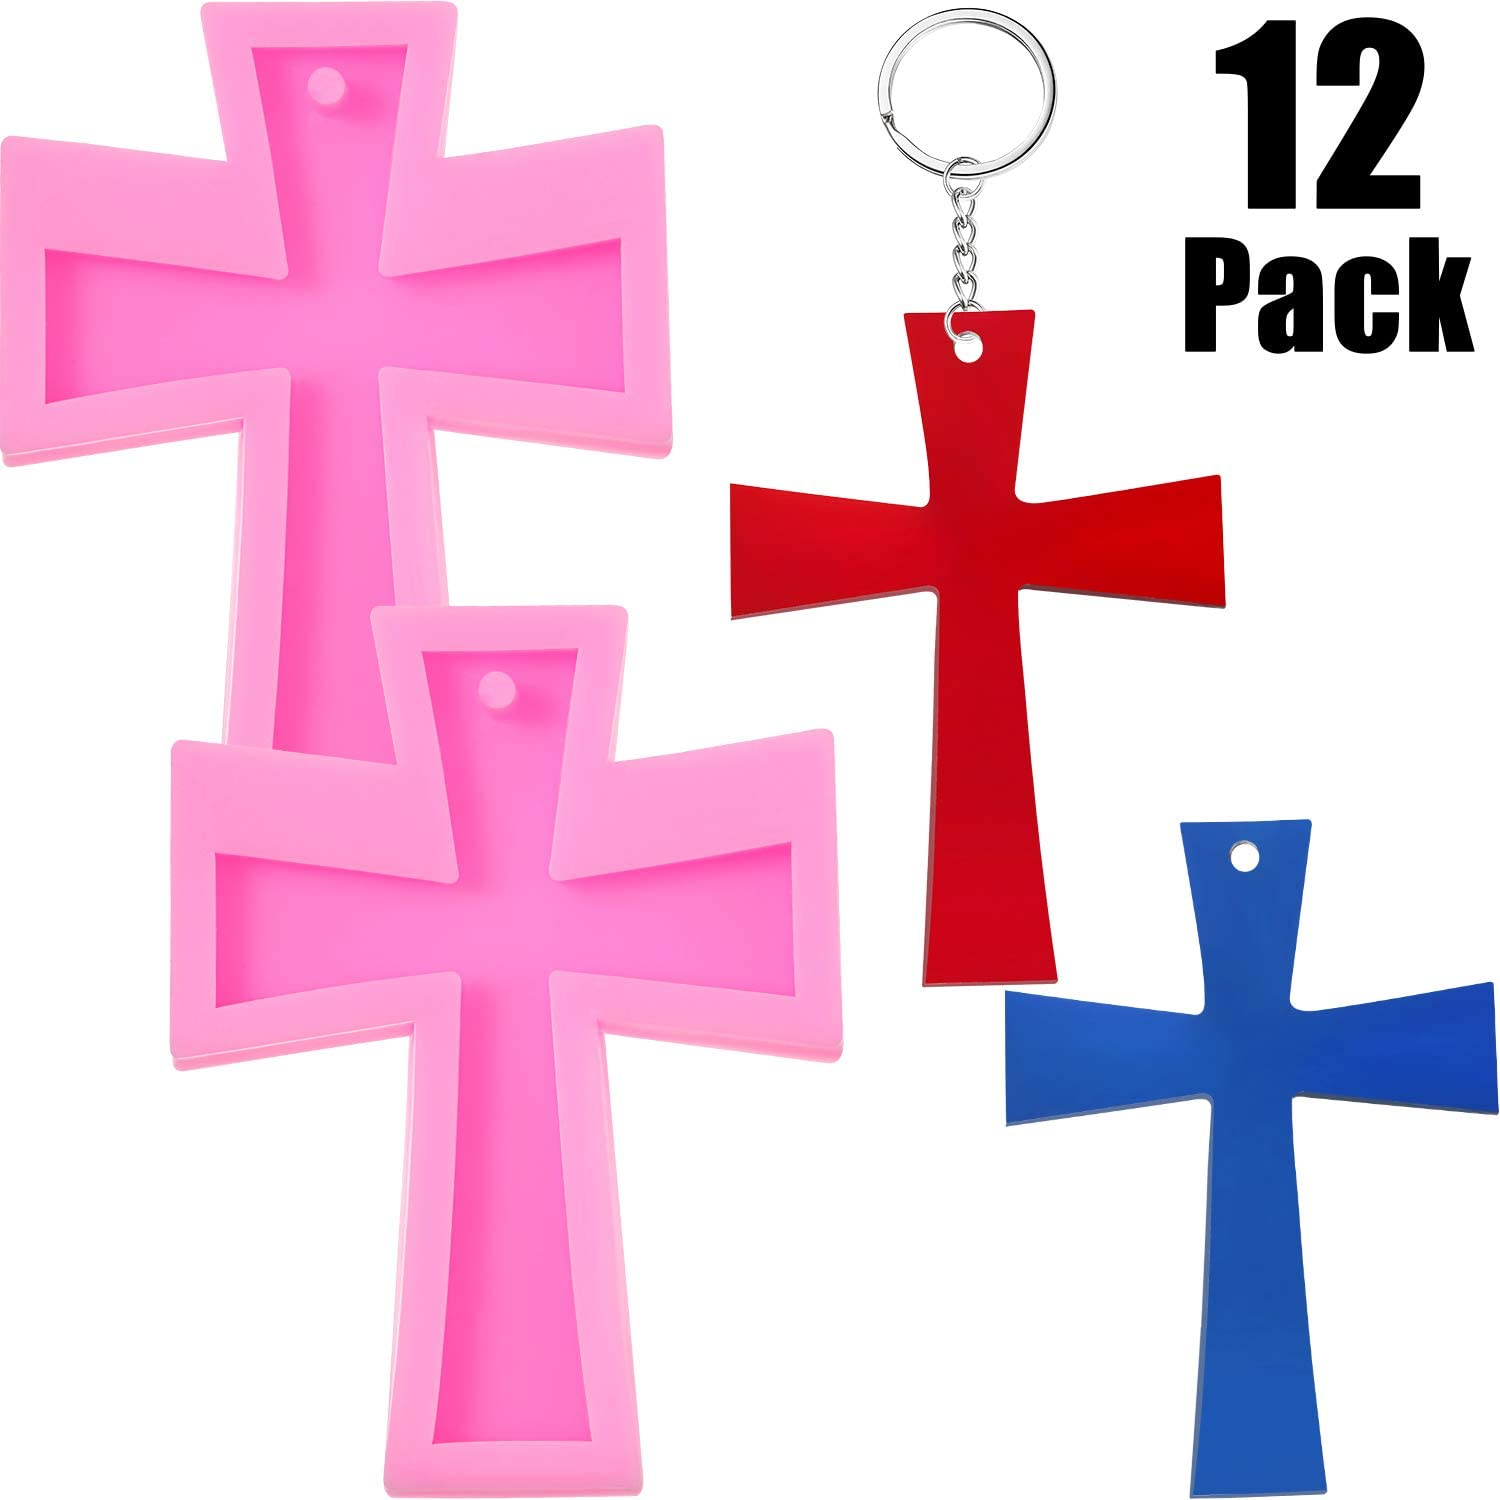 2 Pieces Cross Shape Silicone Mold Cross Shape Keychain Mold with Round Hole, DIY Silicone Baking Mold with 10 Pieces Key Rings for Making Keychains, Cake, Chocolate, Candy, Dessert